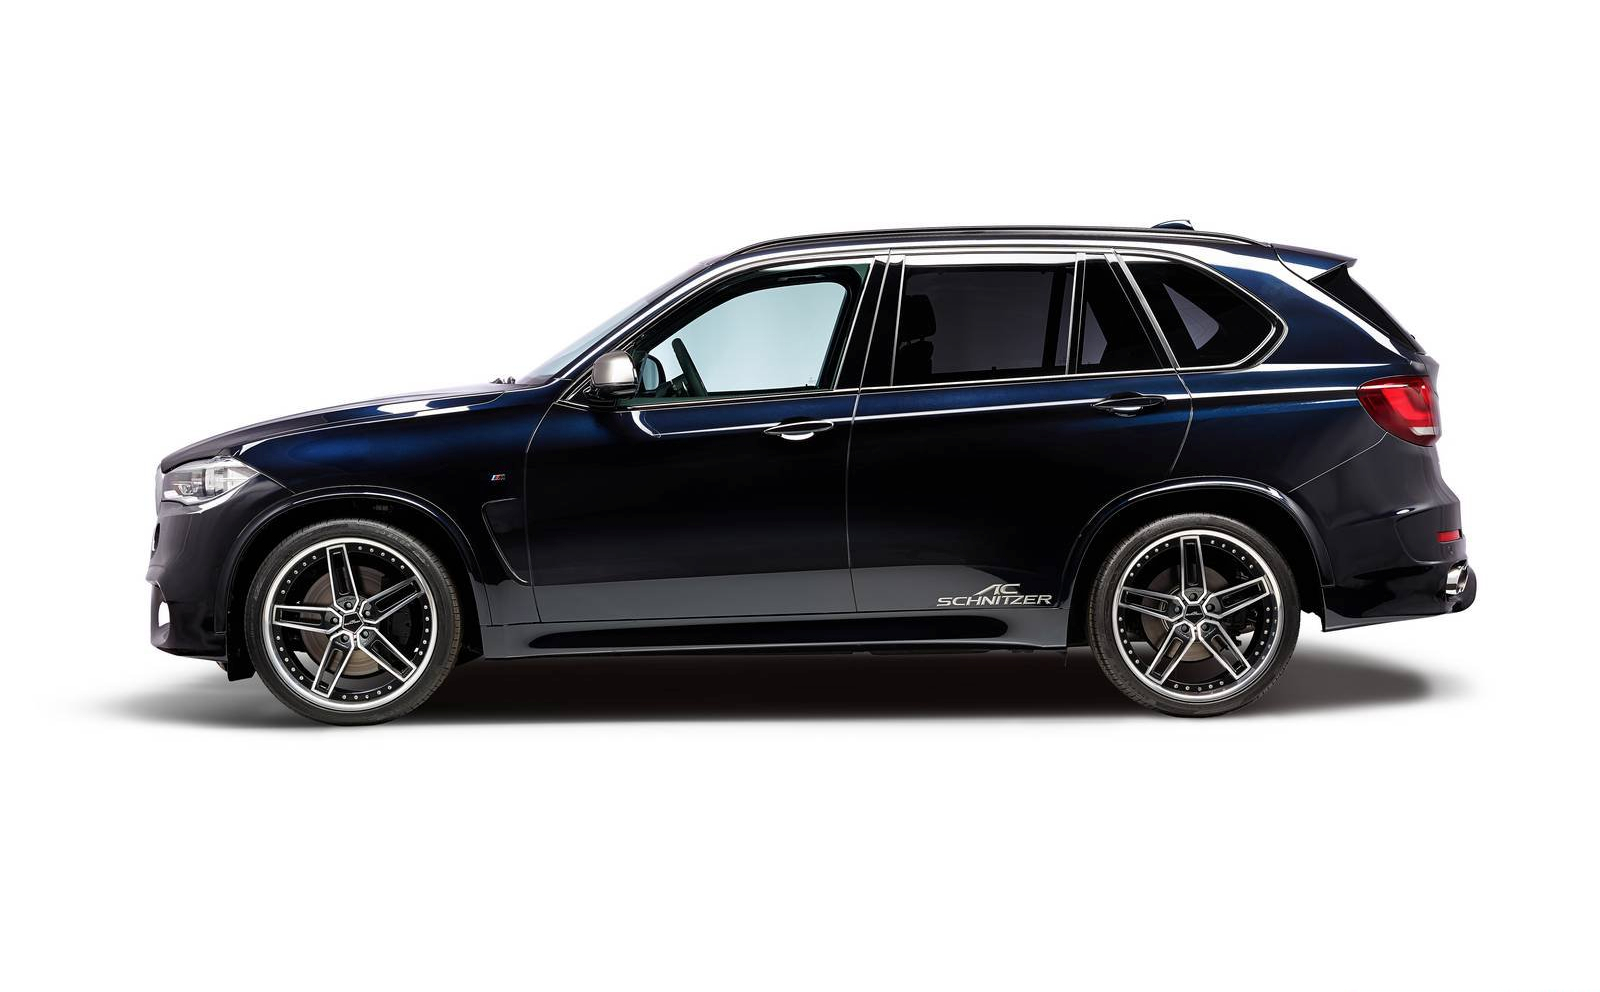 bmw x5 m50d by ac schnitzer unveiled online autoevolution. Black Bedroom Furniture Sets. Home Design Ideas